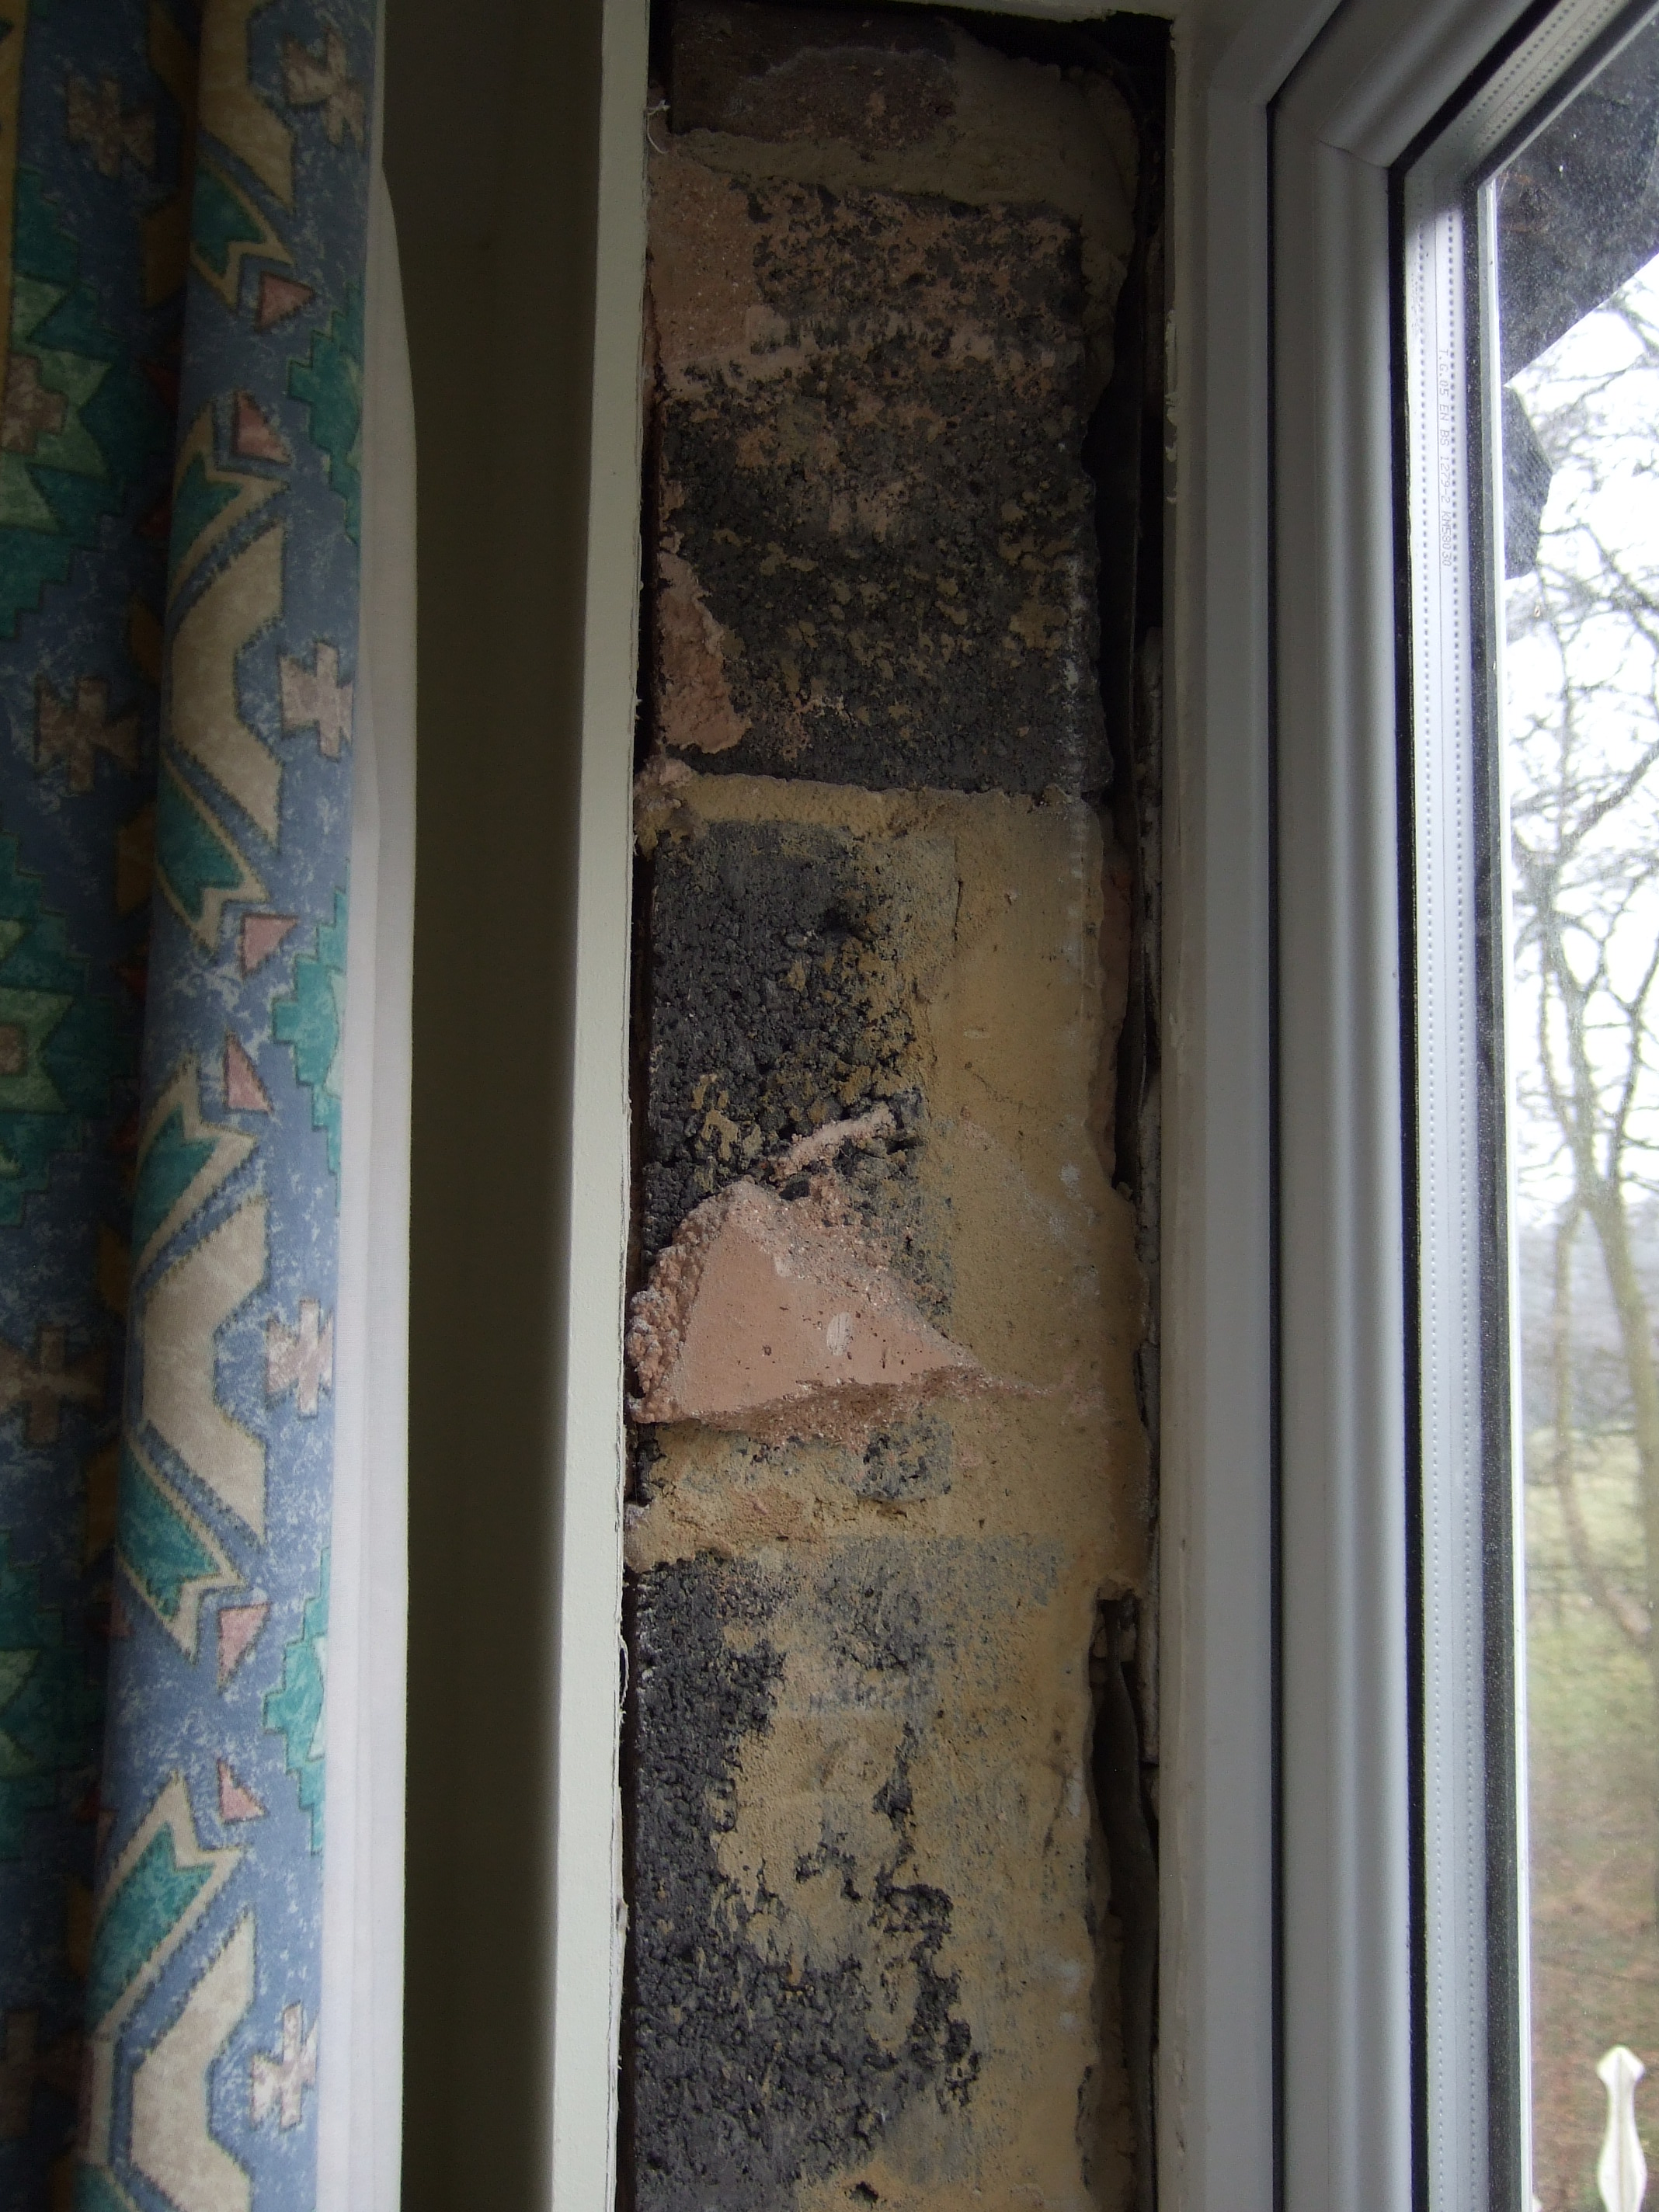 The plasterboard fully removed from a window reveal, note the presence